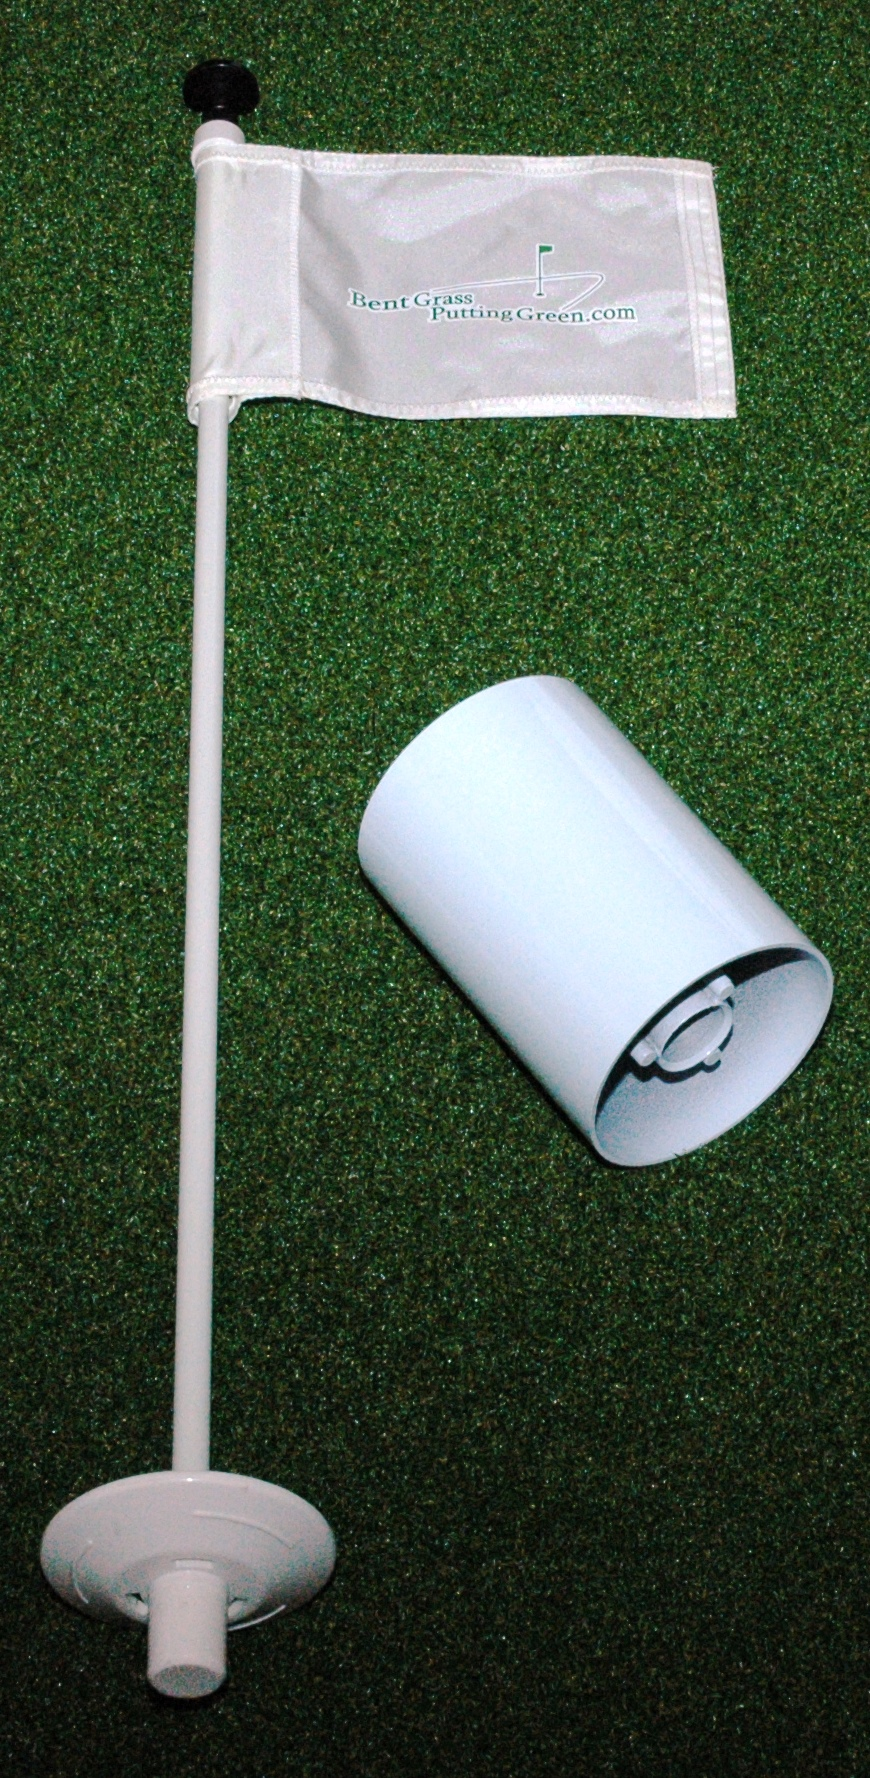 Putting green, cups, flag, sticks